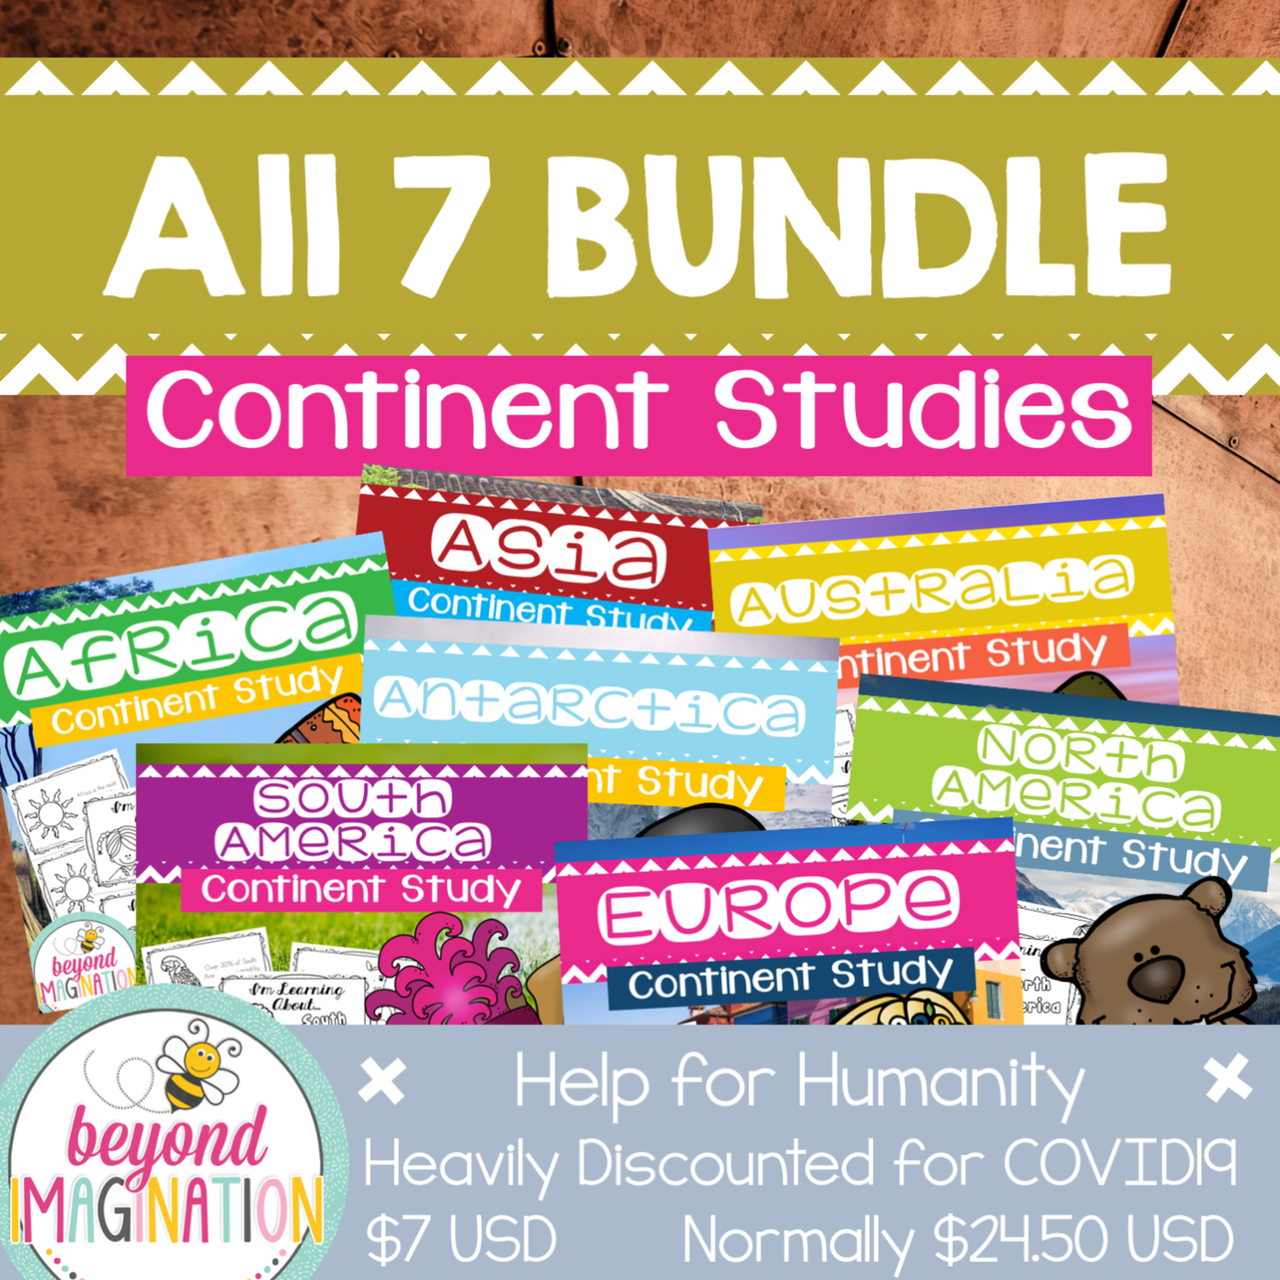 Continent Study Bundle Help for Humanity COVID19